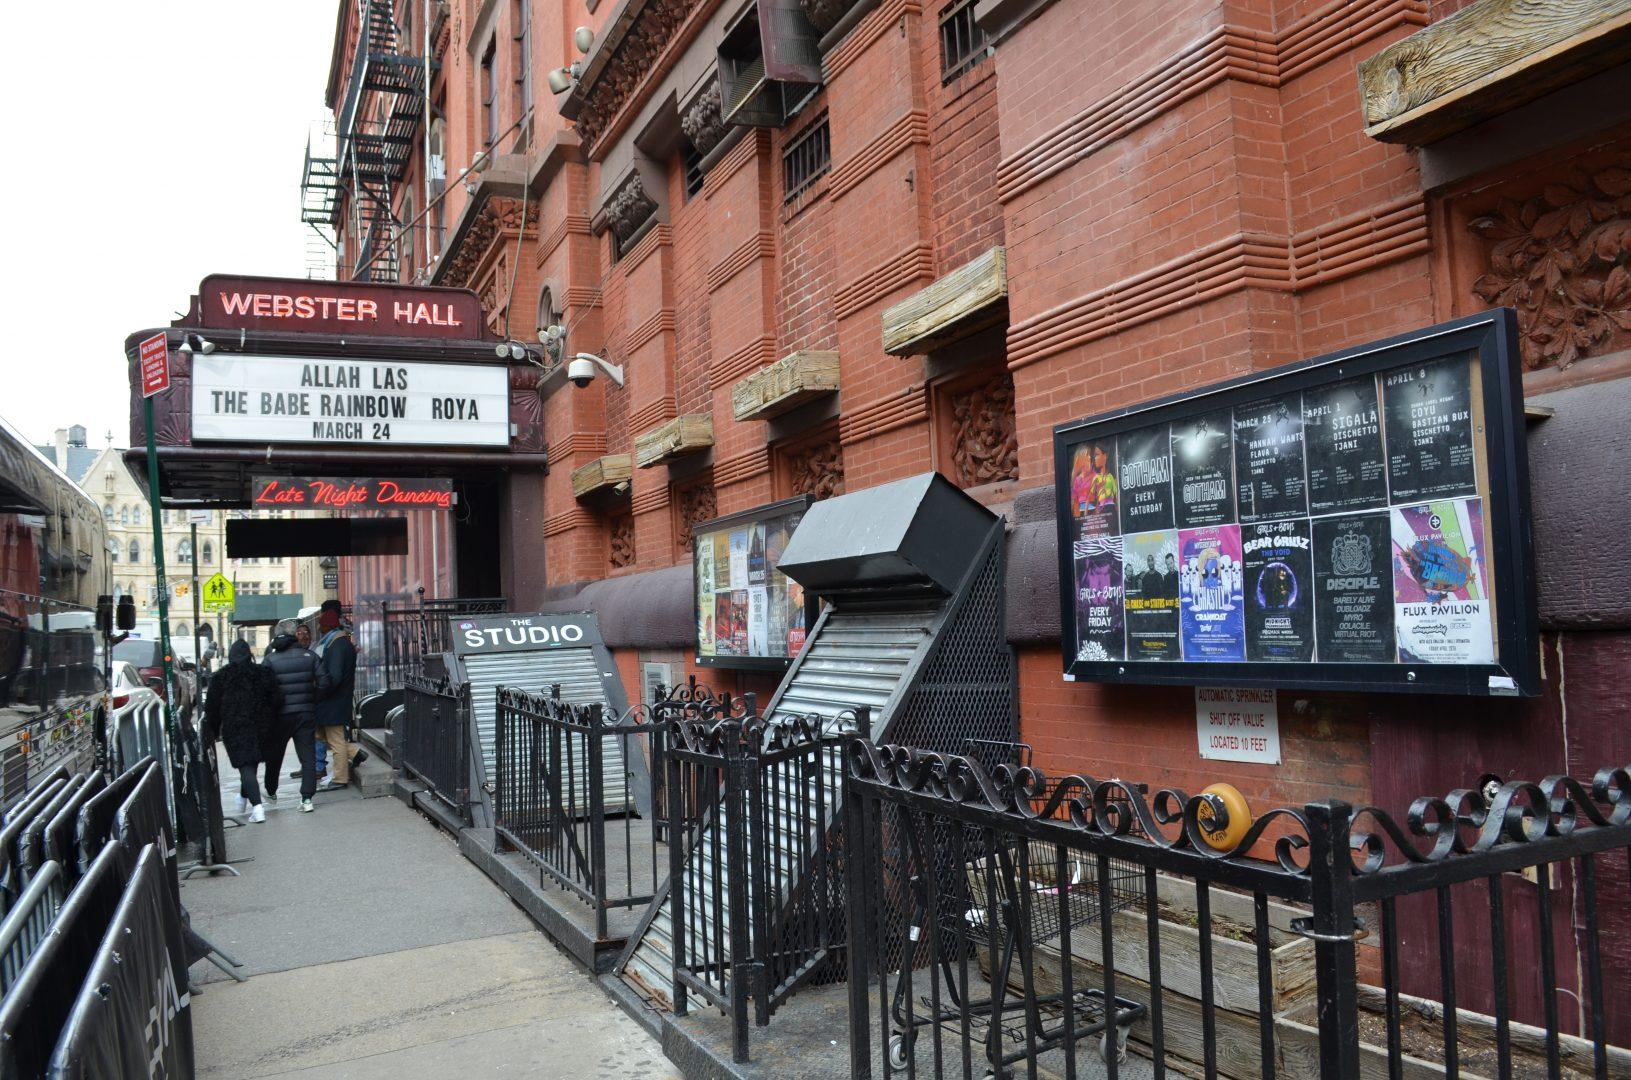 Some venues include Webster Hall, the Highline Ballroom and the Knitting Factory. (JILLIAN JAYMES/THE OBSERVER)